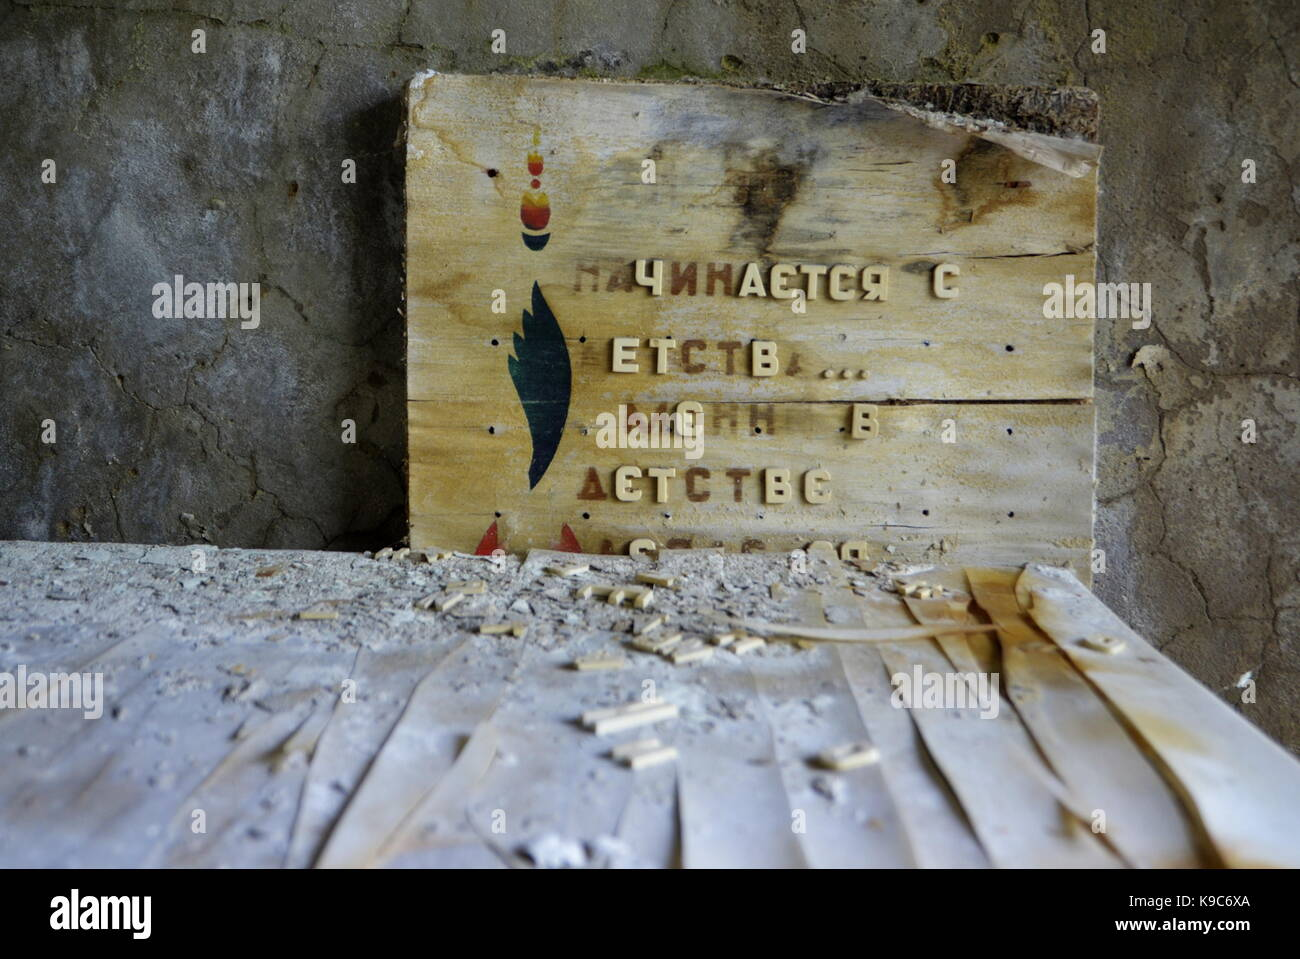 Details of an abandoned school in Pripya, Chernobyl Exclusion Zone, Ukraine. - Stock Image